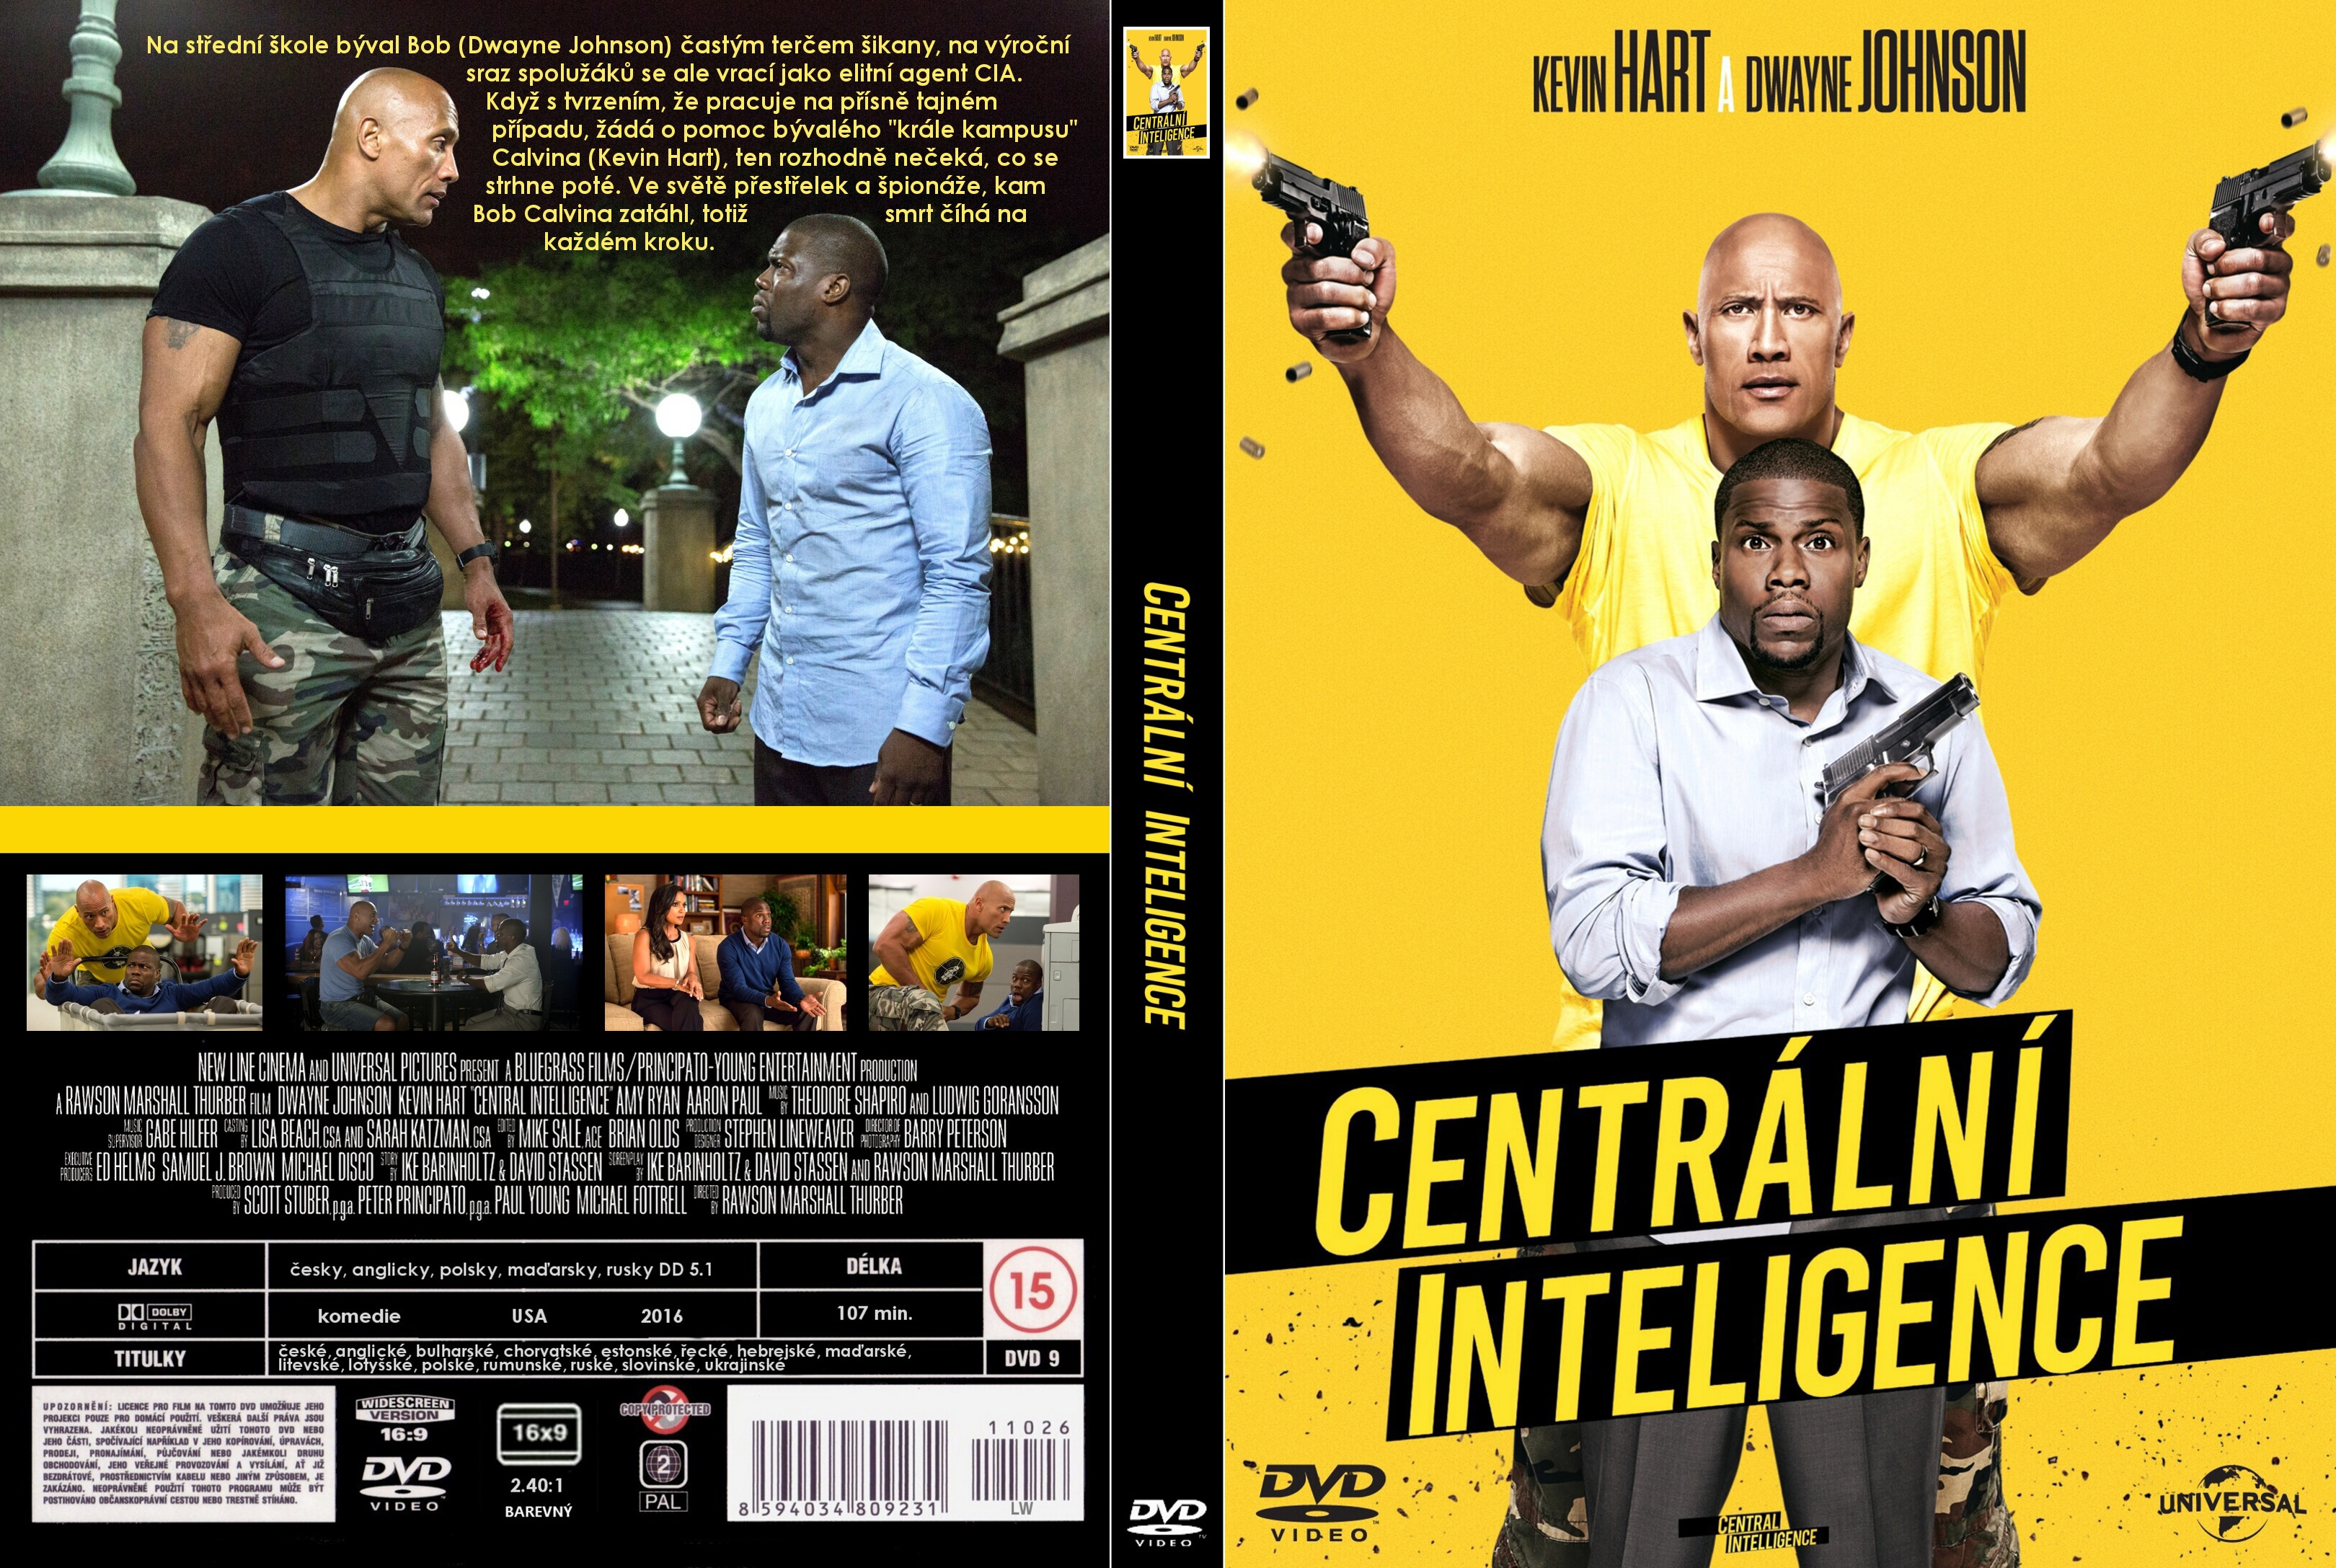 Covers Box Sk Central Intelligence 2016 High Quality Dvd Blueray Movie